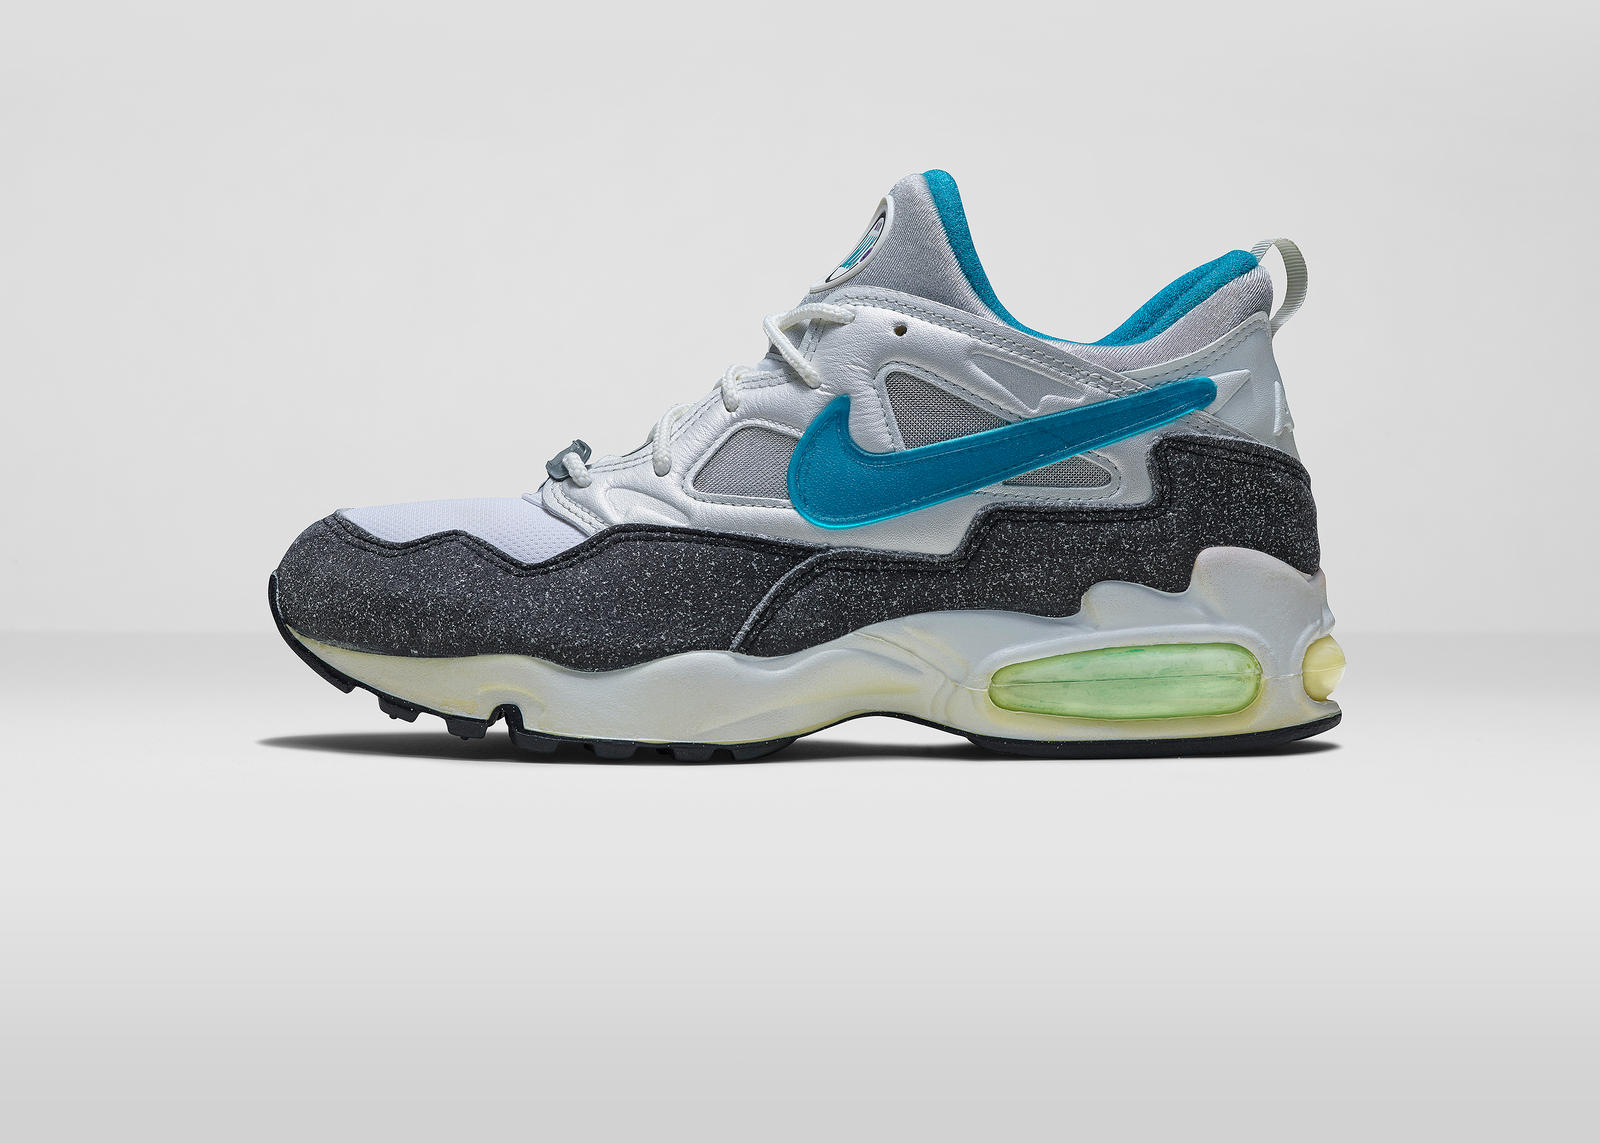 new concept a6940 c9e17 ... promo code for air max 94. nike airmaxday 2015 1994 lat rectangle 1600  c6af6 72189